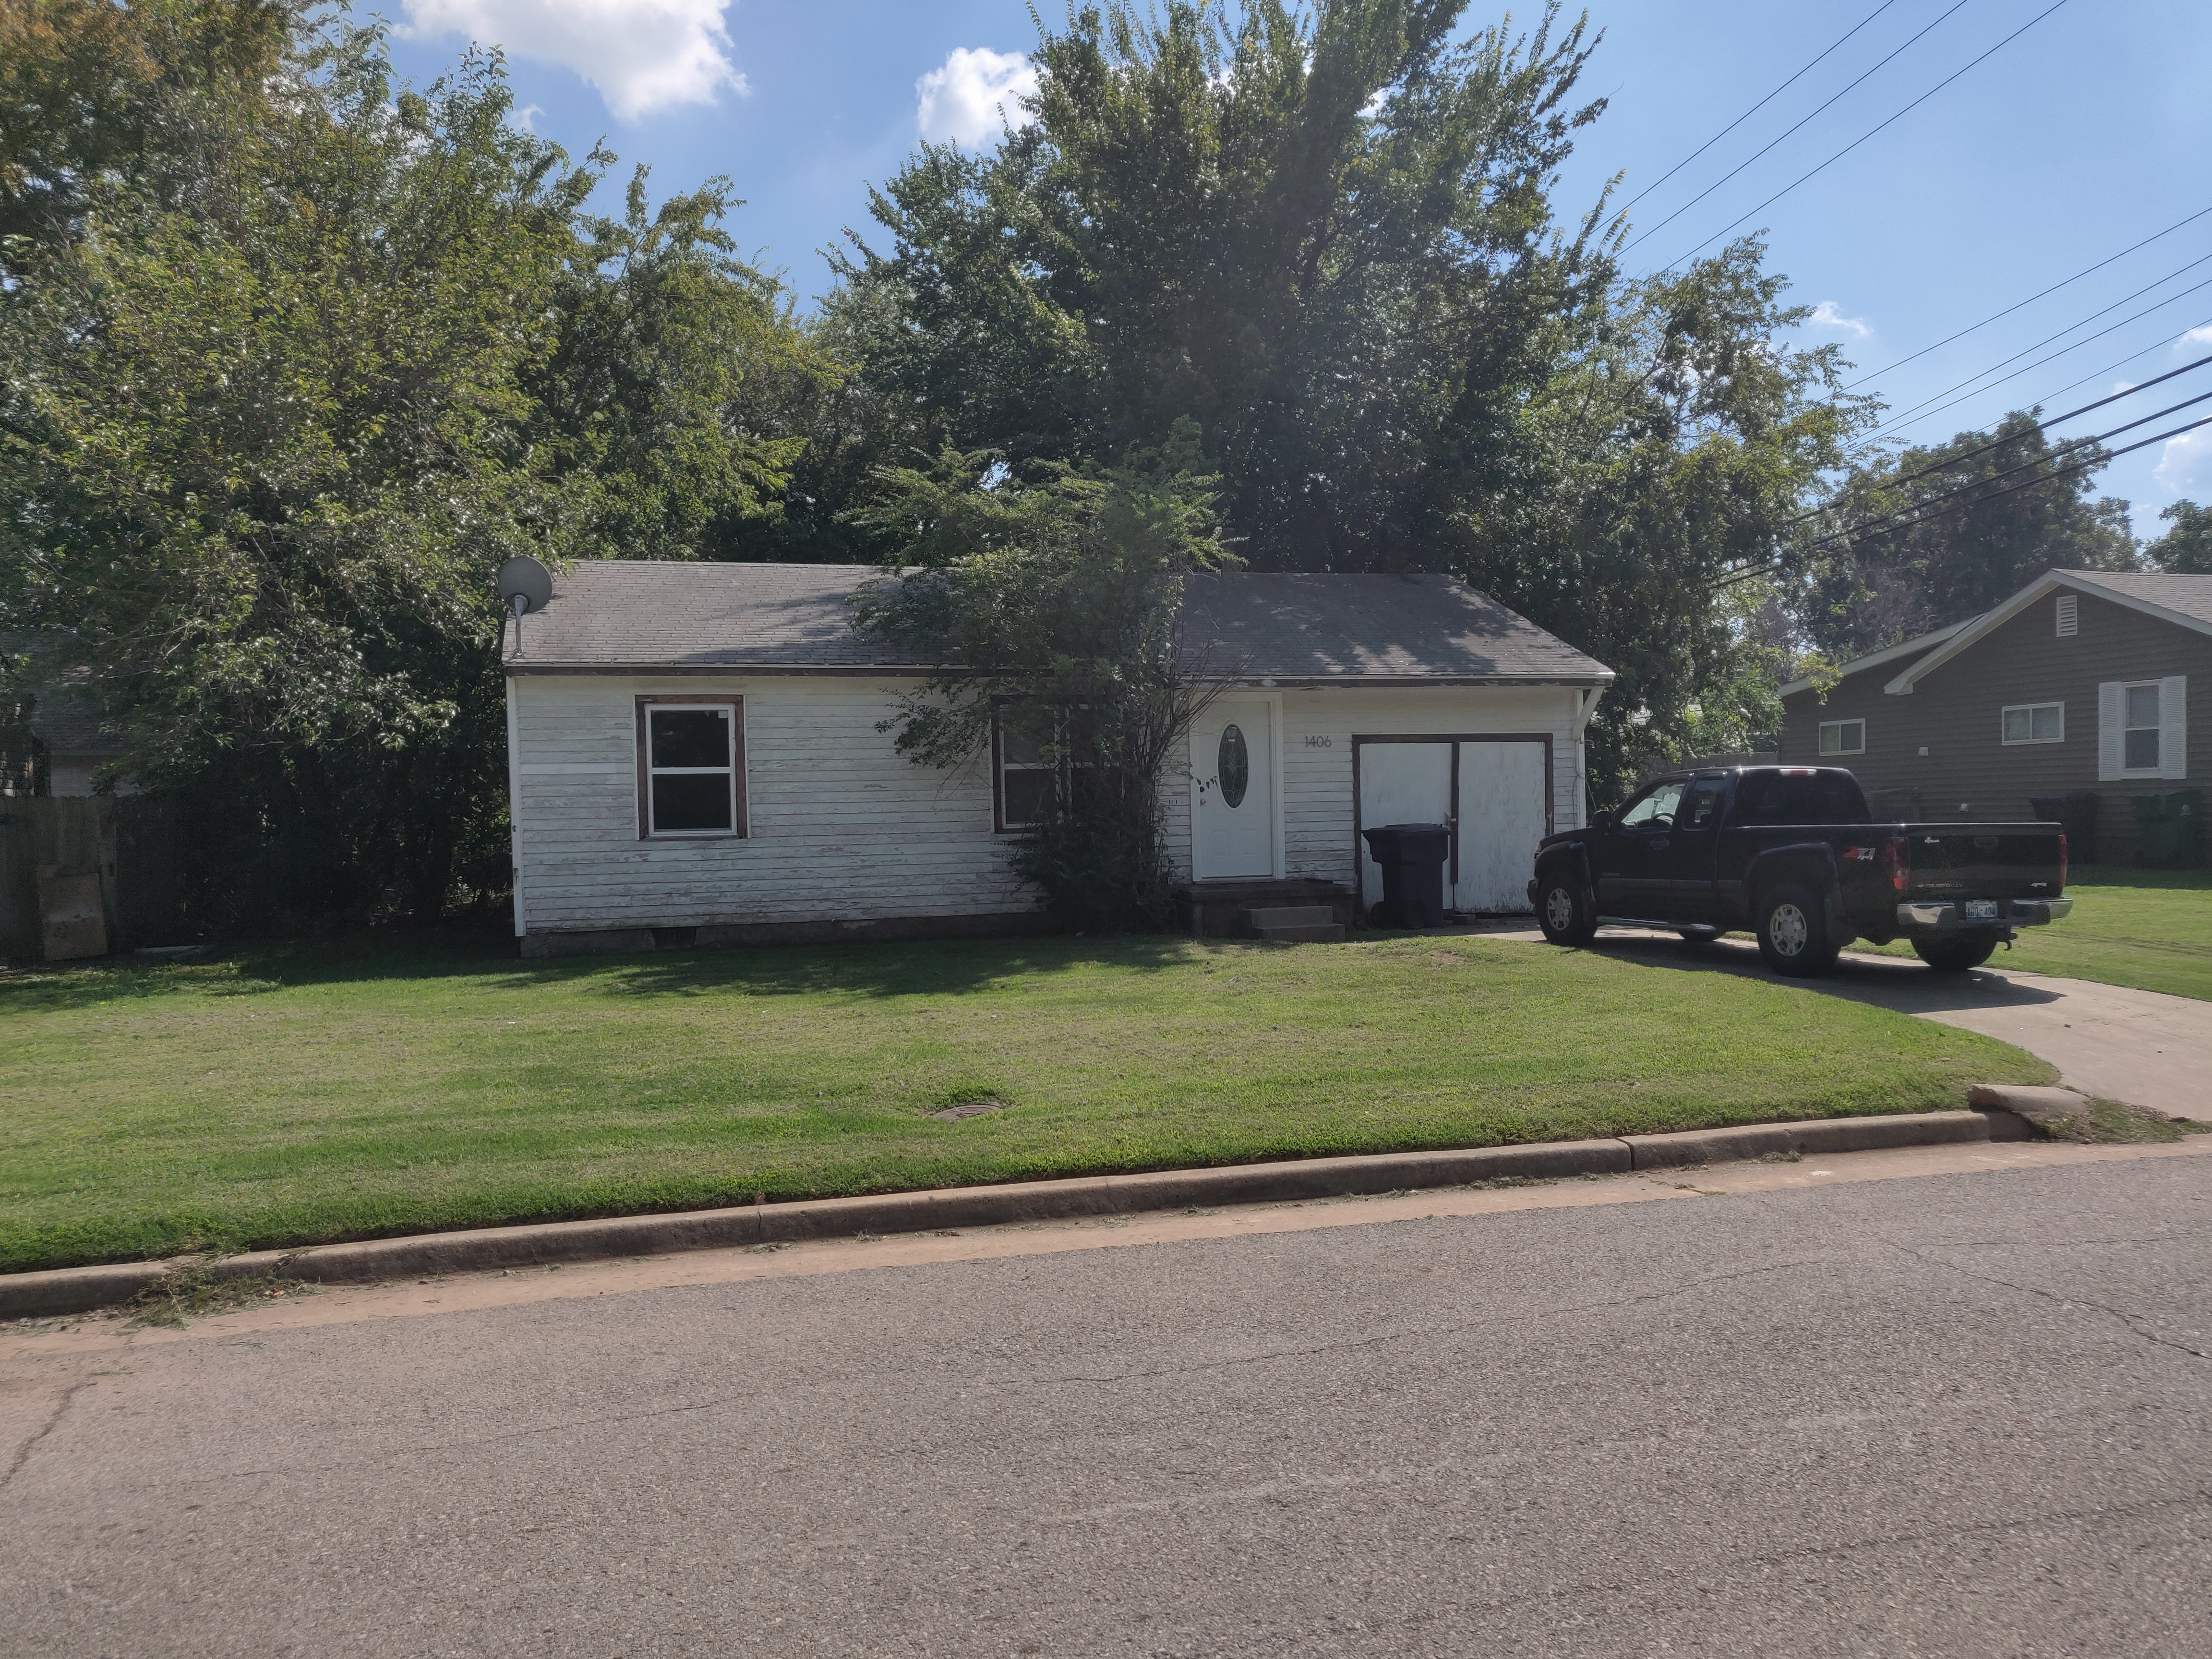 NW Oklahoma City, Fixer Upper, 2 bed 1 bath, 1 car. Good Area